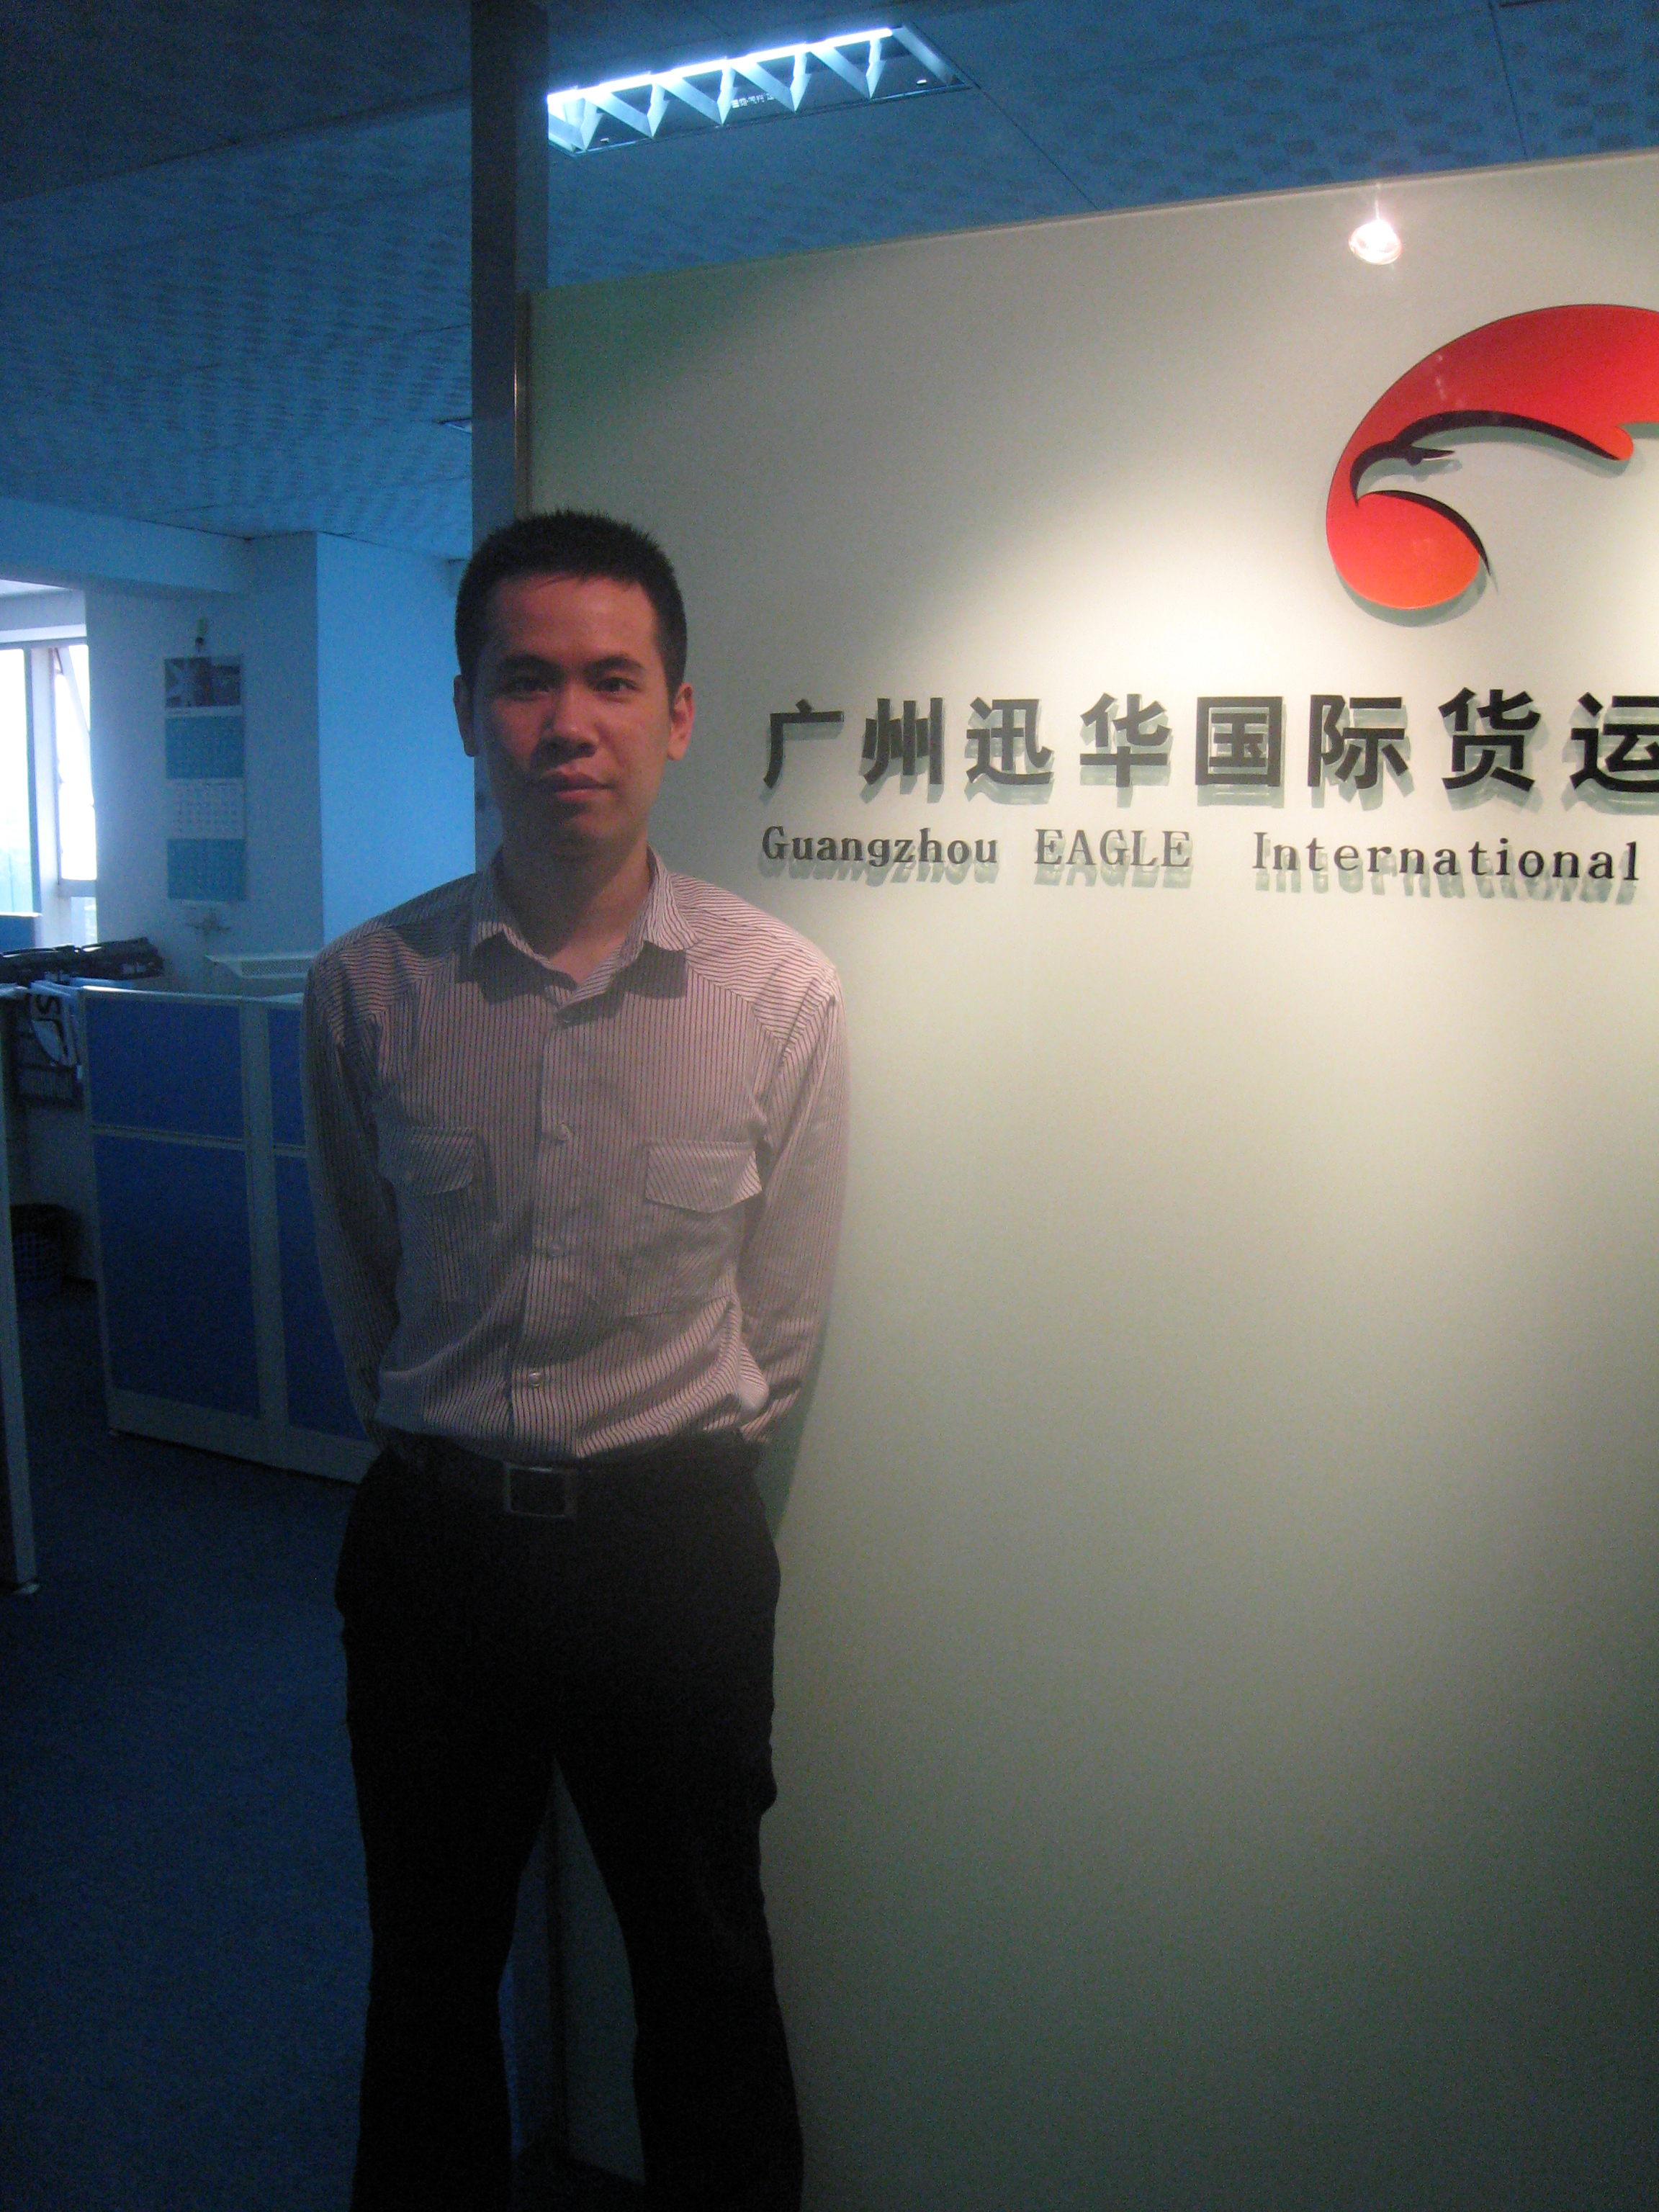 Interview with Sunny Zhang, the sale of Guangzhou EAGLE International Transportation Co., Ltd,